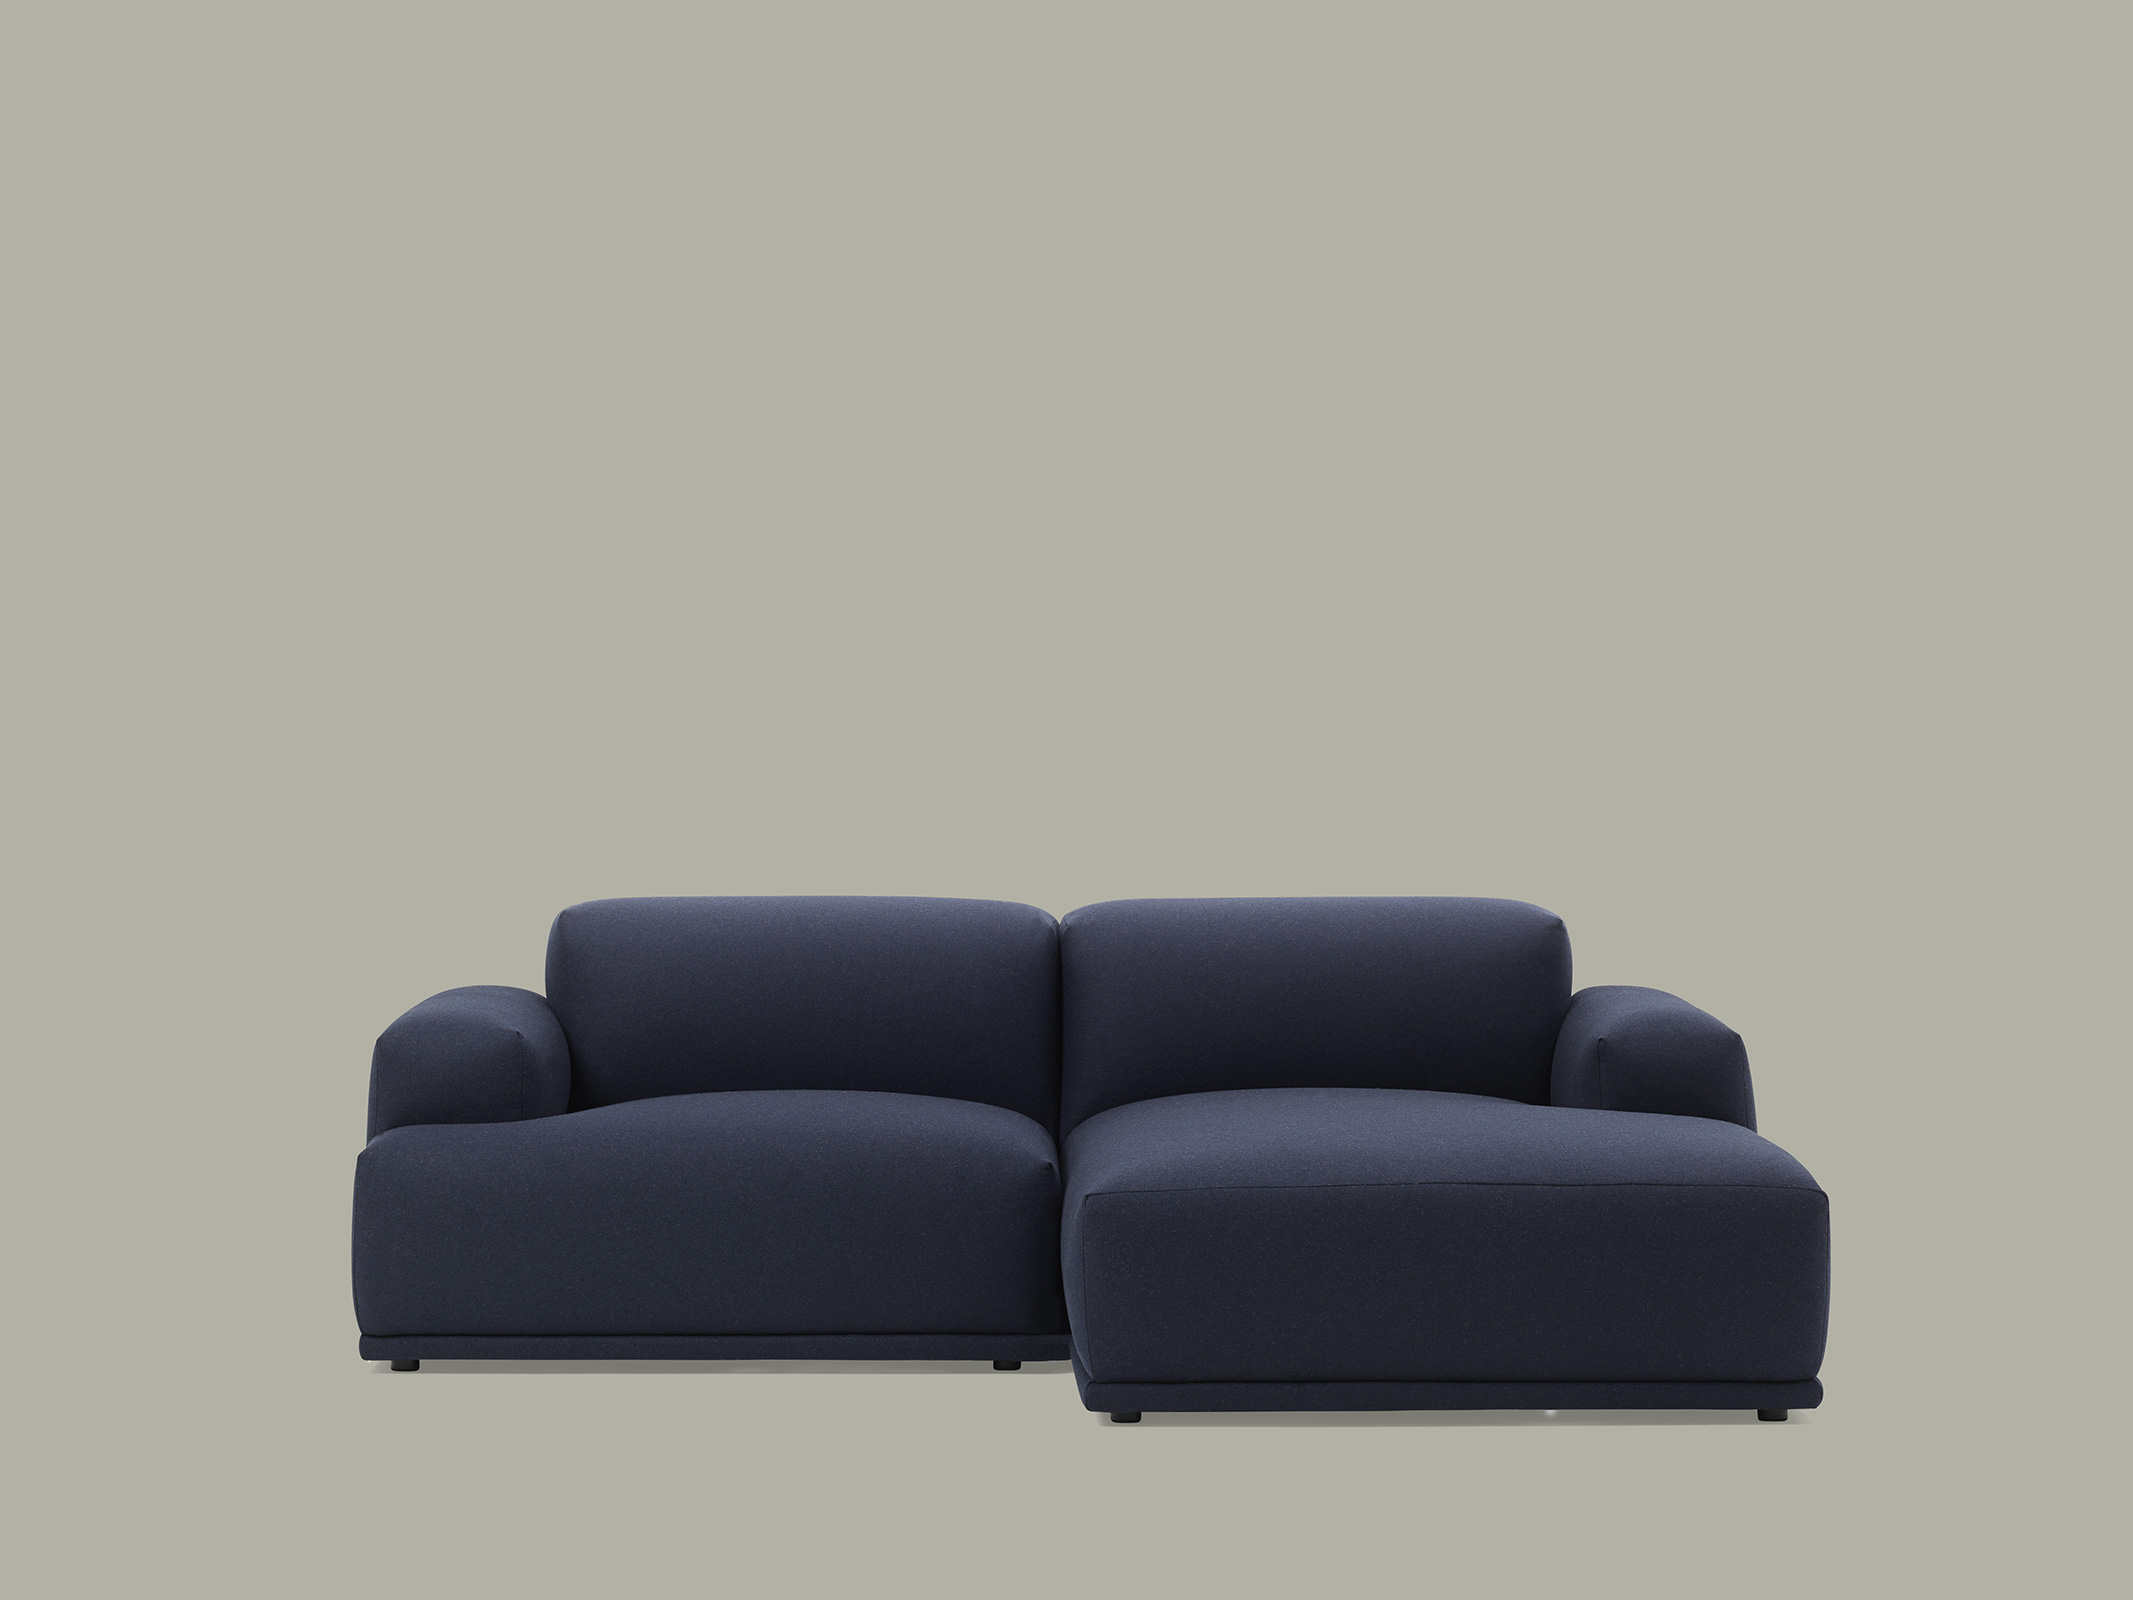 Full Size of Muuto Sofa Connect Table Sofabord Around Outline 3 1/2 Compose Review Von Modell A K Jetzt Online Rotes Günstiges Mondo Sitzer Mit Relaxfunktion 2 Flexform Sofa Muuto Sofa